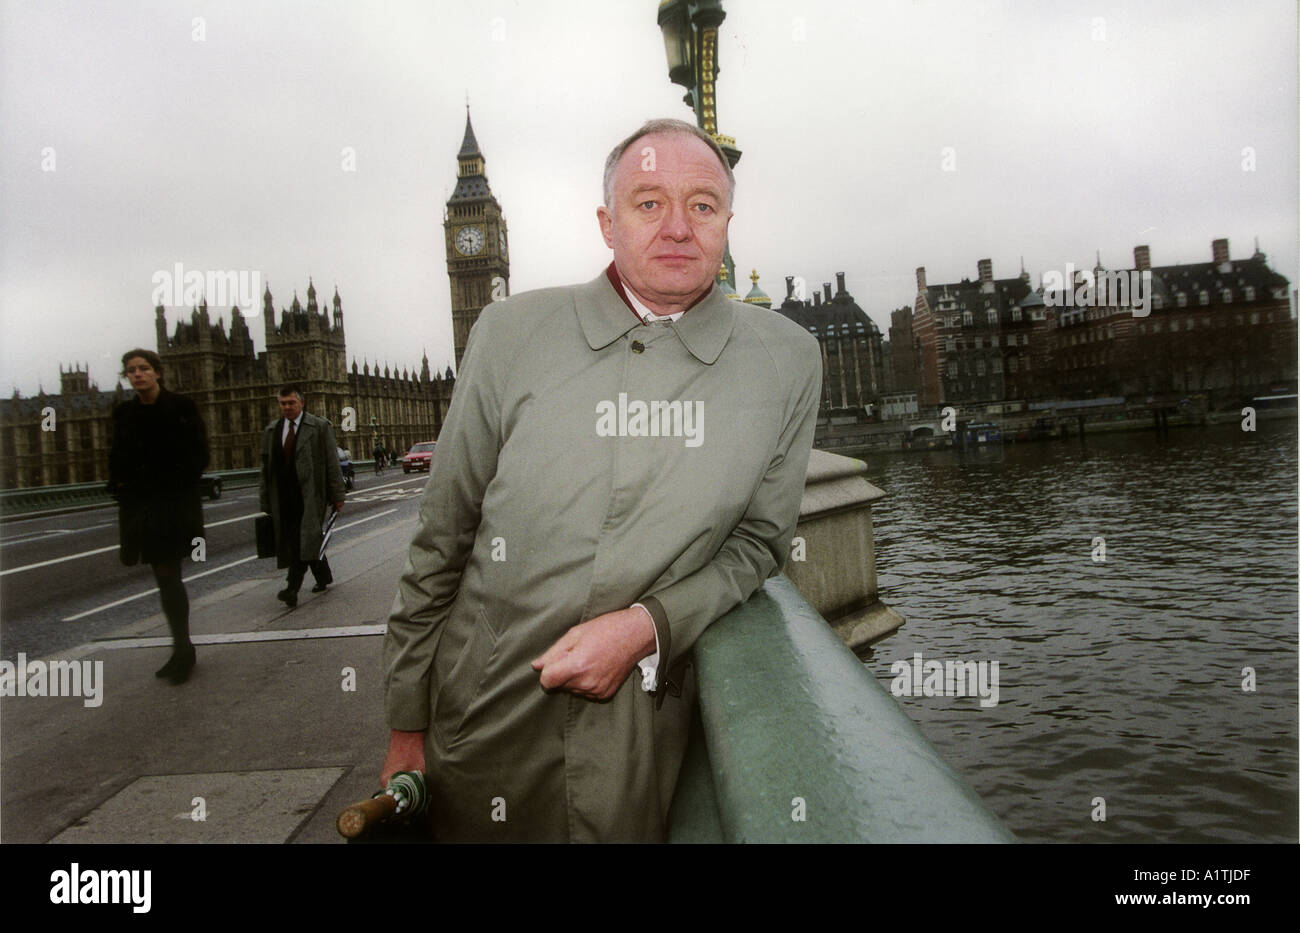 Ken Livingstone Mayor of London in front of the Houses of Parliament - Stock Image